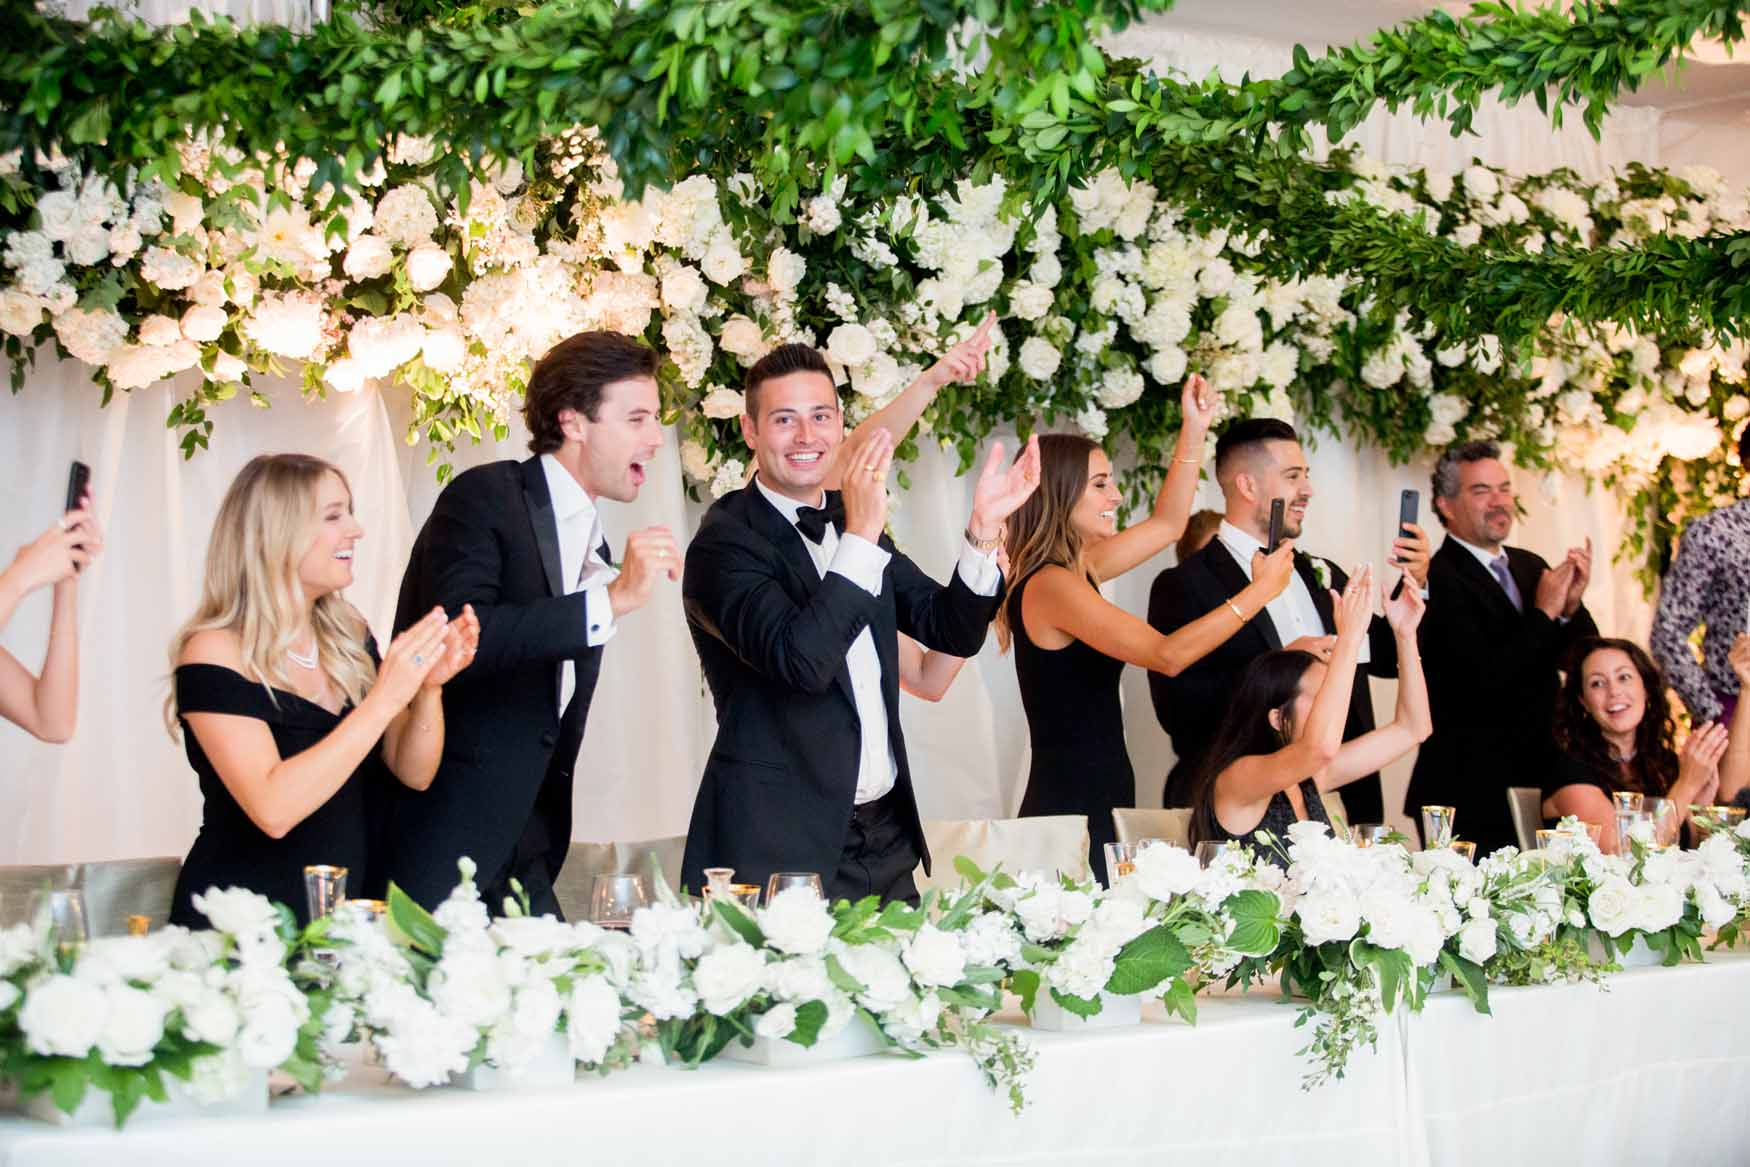 Luxurious wedding head table with flower wall backdrop